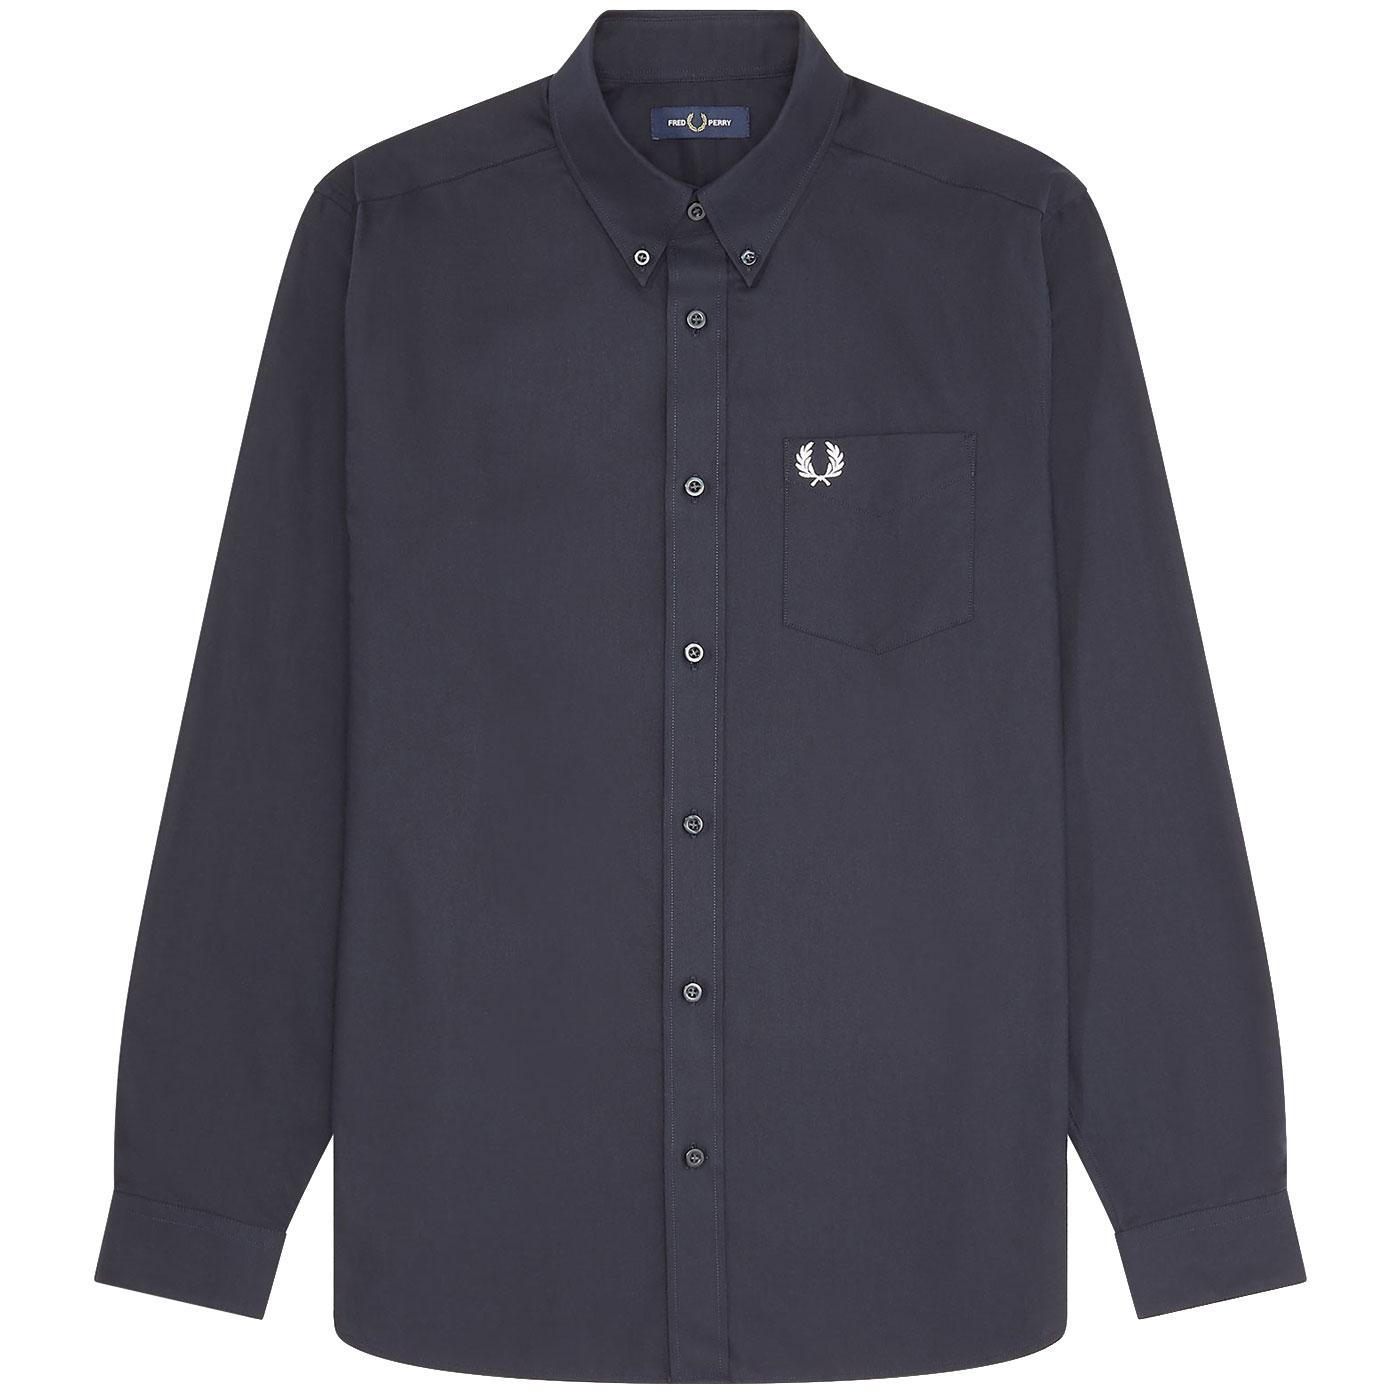 FRED PERRY Retro Mod Button Down Oxford Shirt N